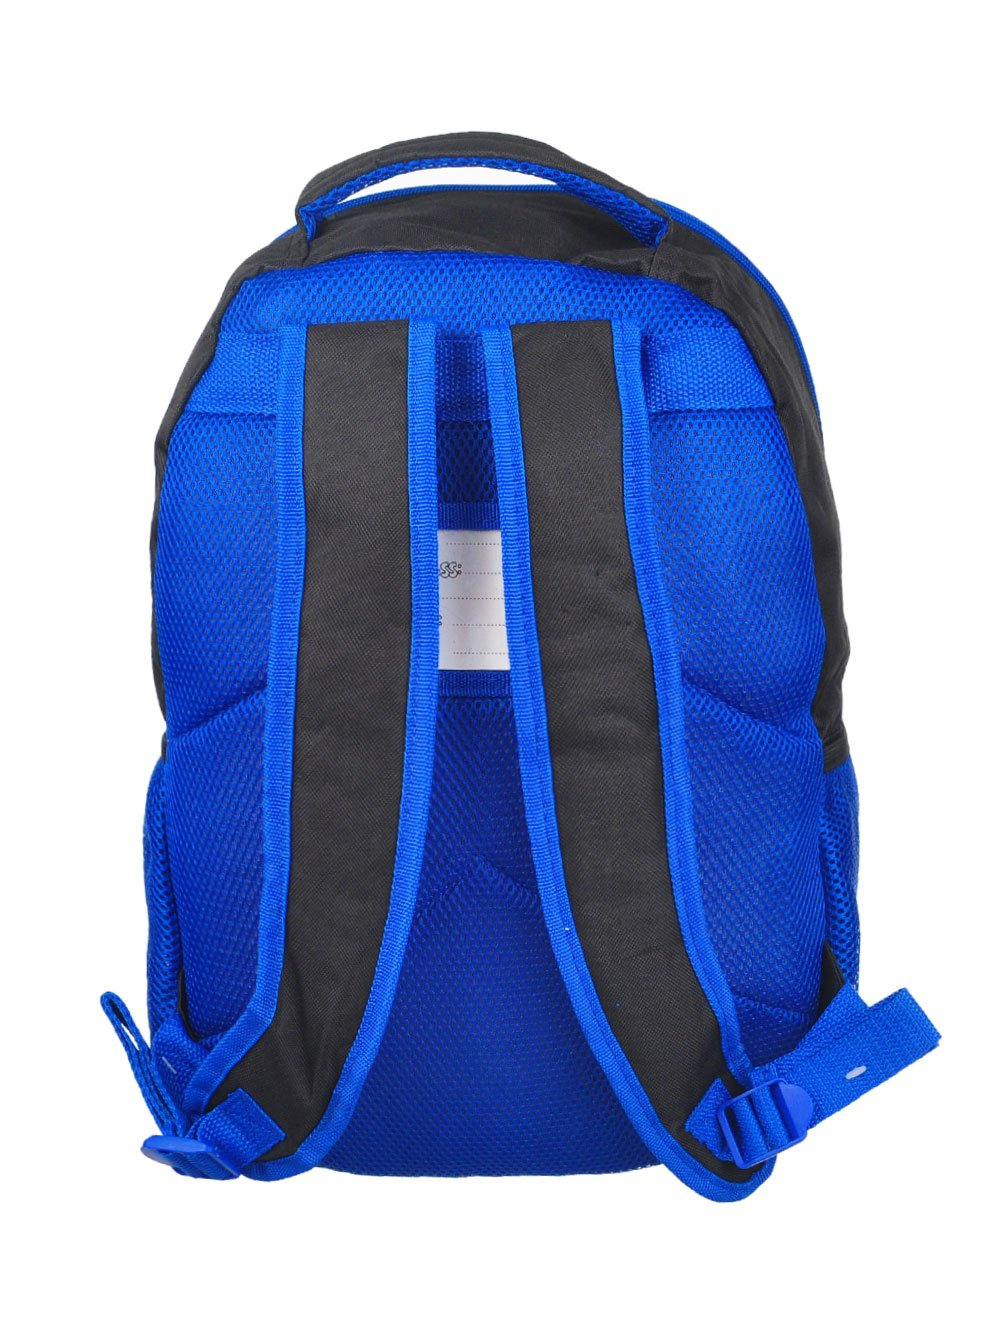 Marvel ''The First Avenger'' Captain America Color Change Lights 16-inch Backpack by Marvel (Image #3)